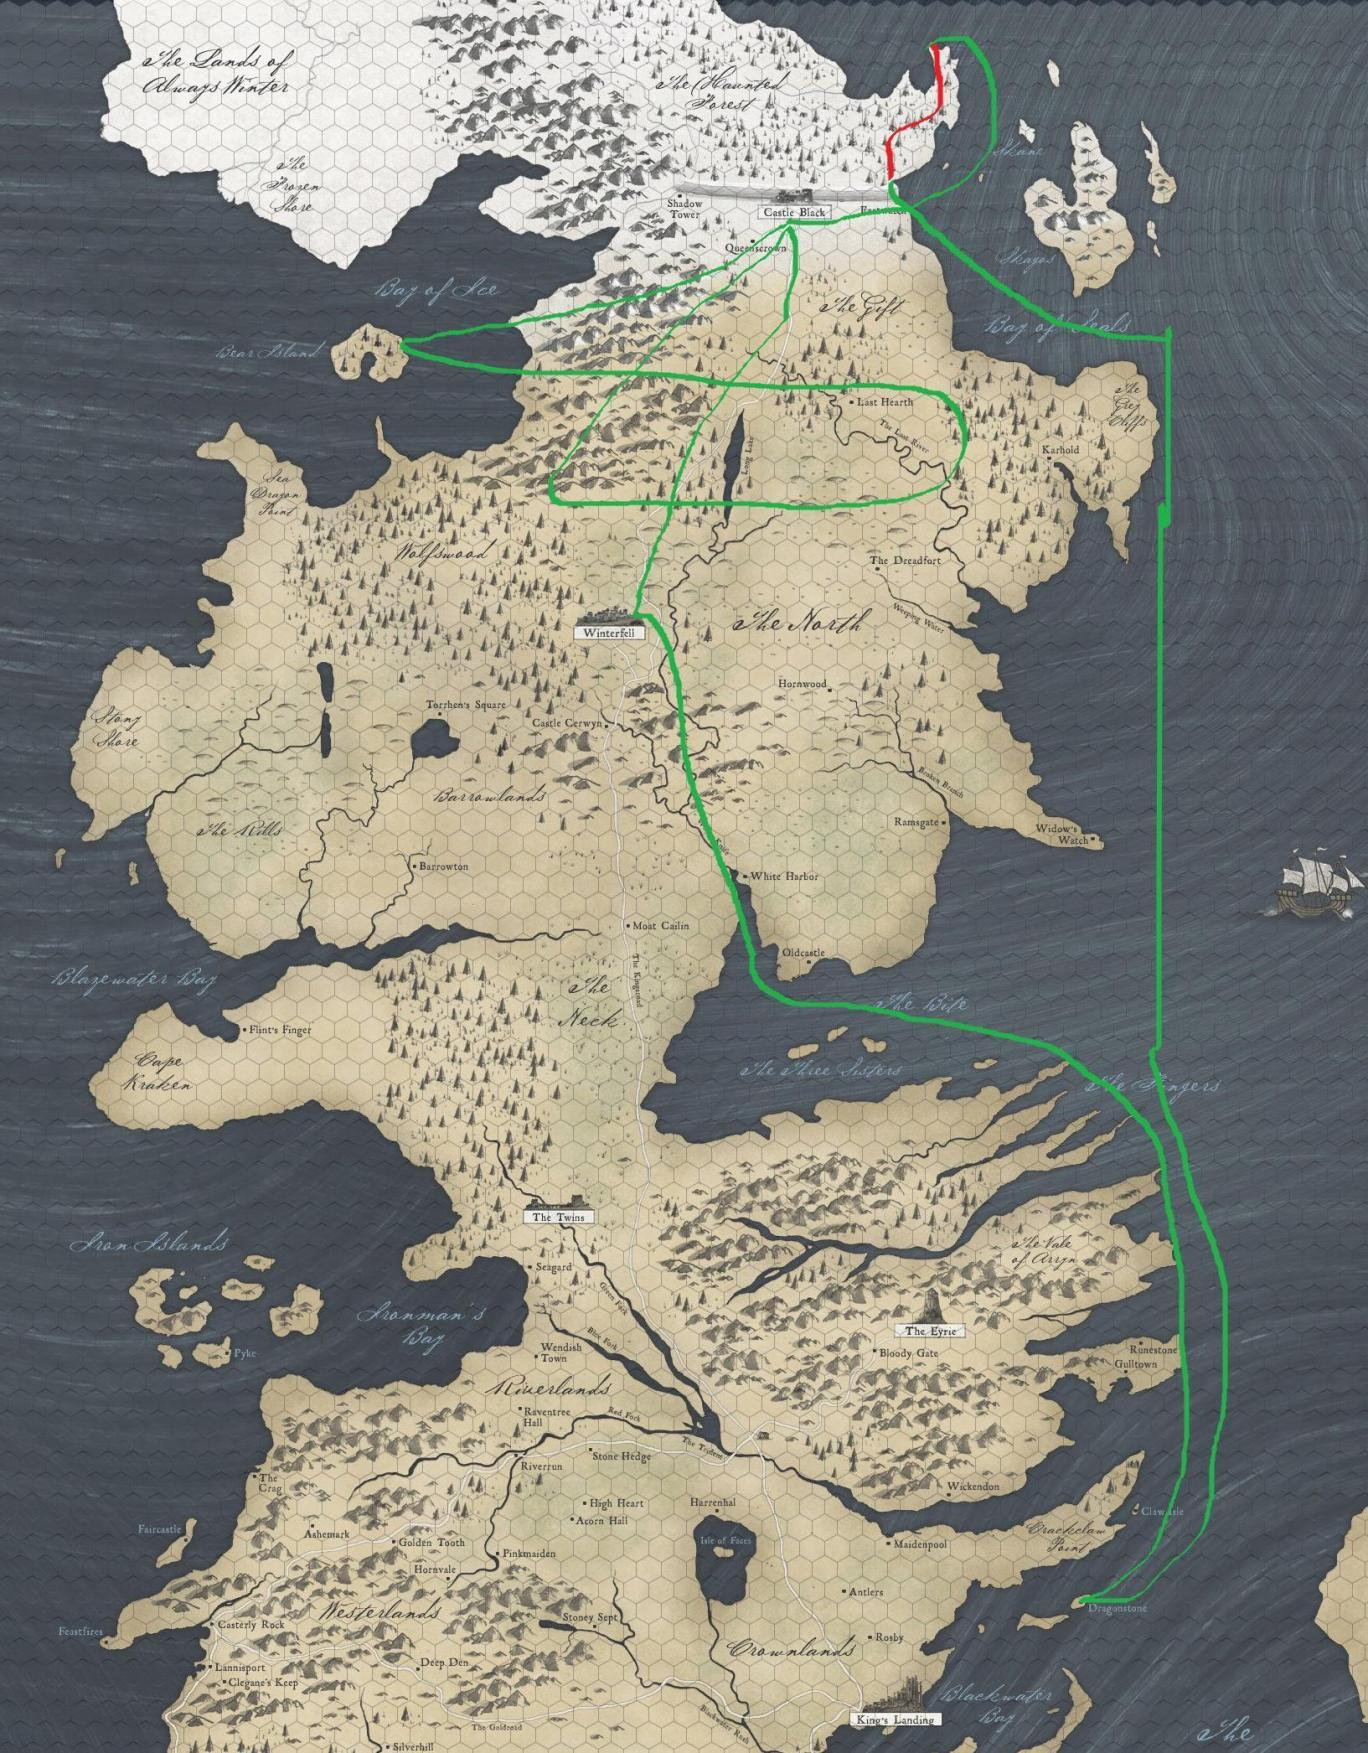 game of thrones map. game of thrones' main problem this season can be explained in a